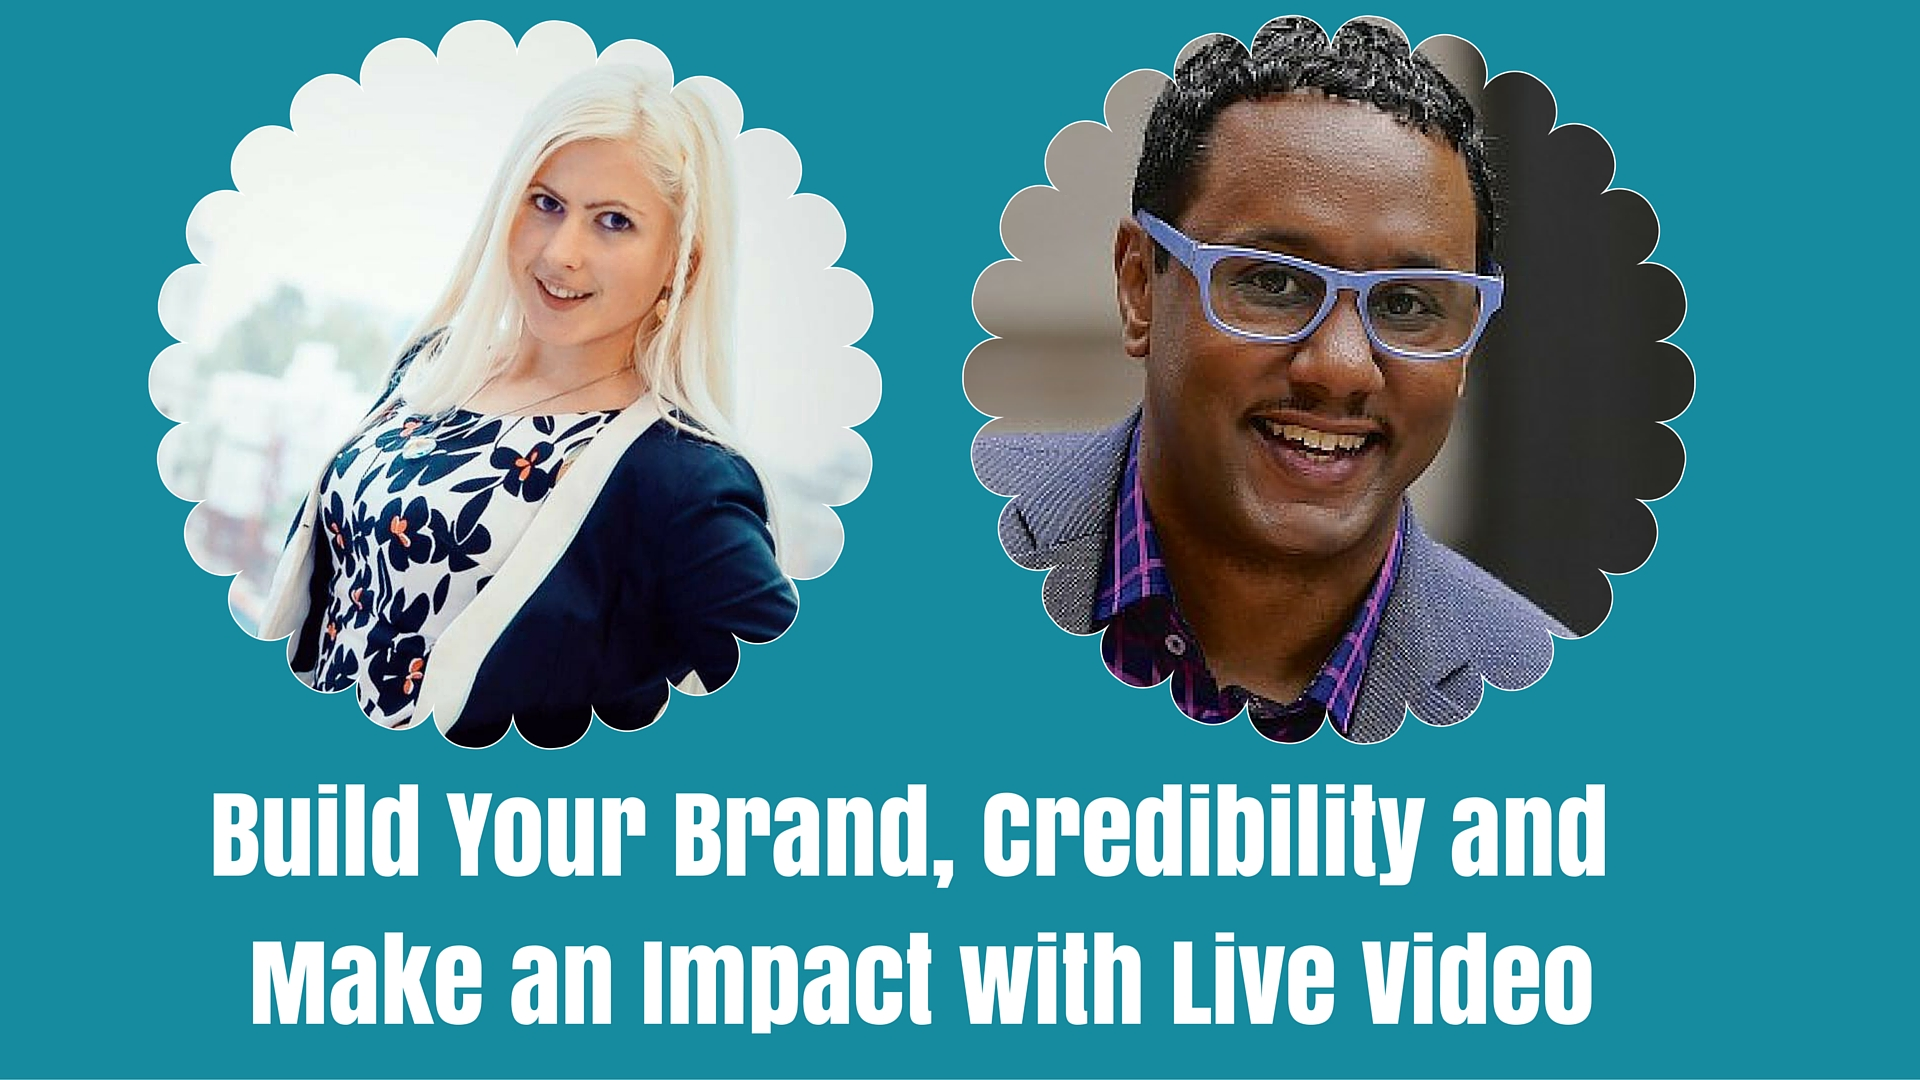 Build Your Brand, Credibility and Make an Impact with Live Video